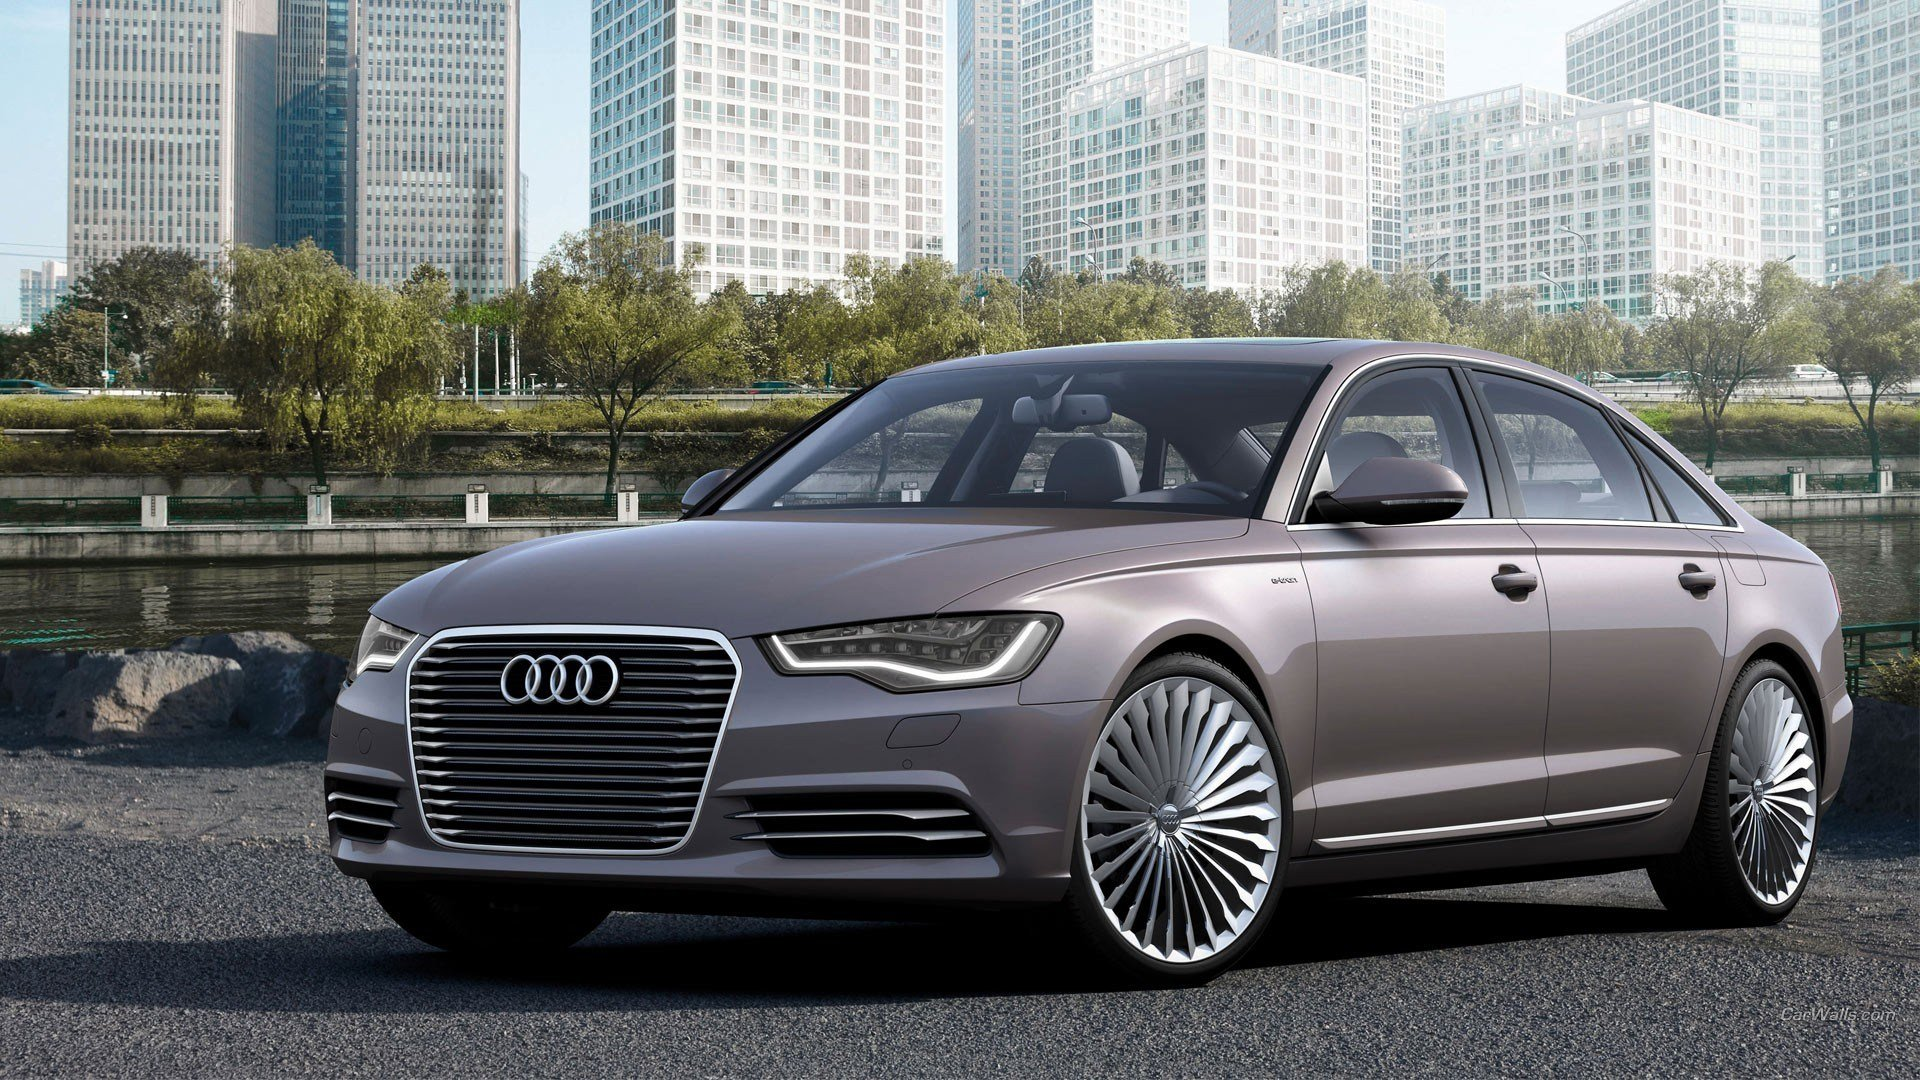 Latest Audi A6 Wallpapers Hd Desktop And Mobile Backgrounds Free Download